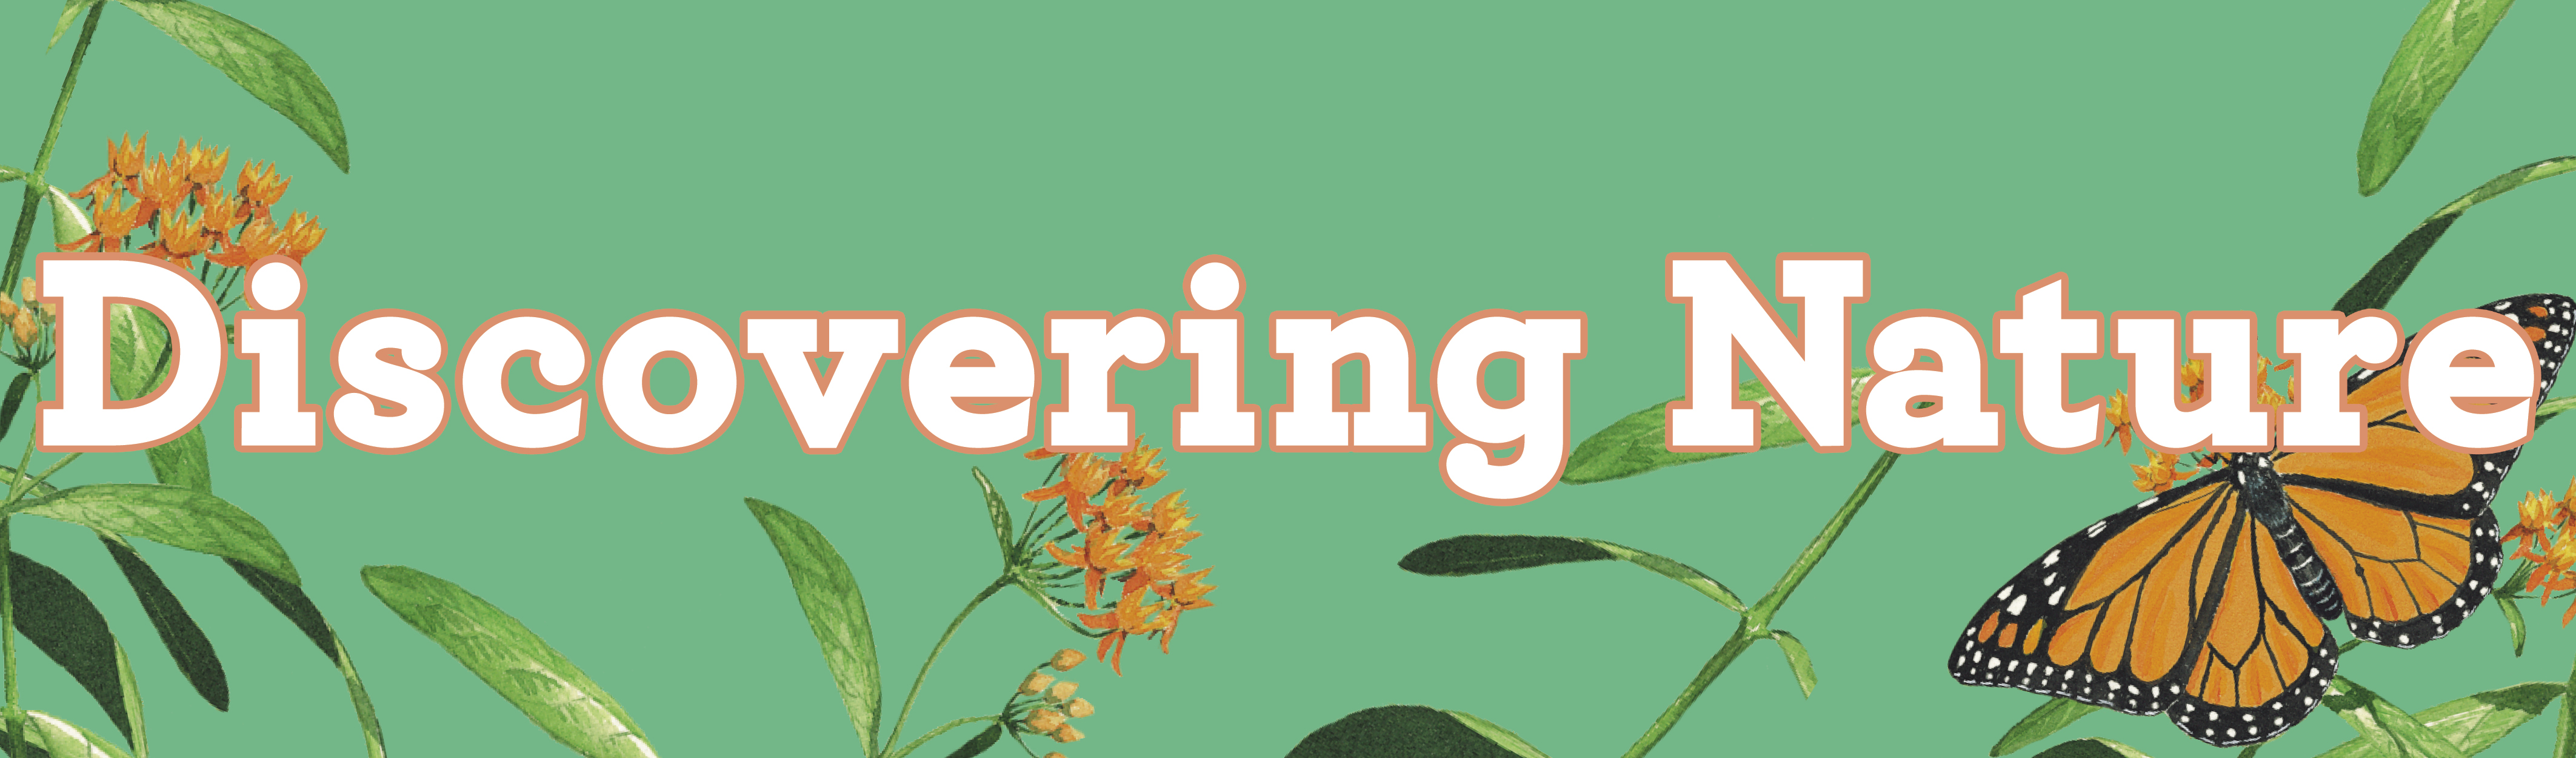 Discovering Nature Series Header